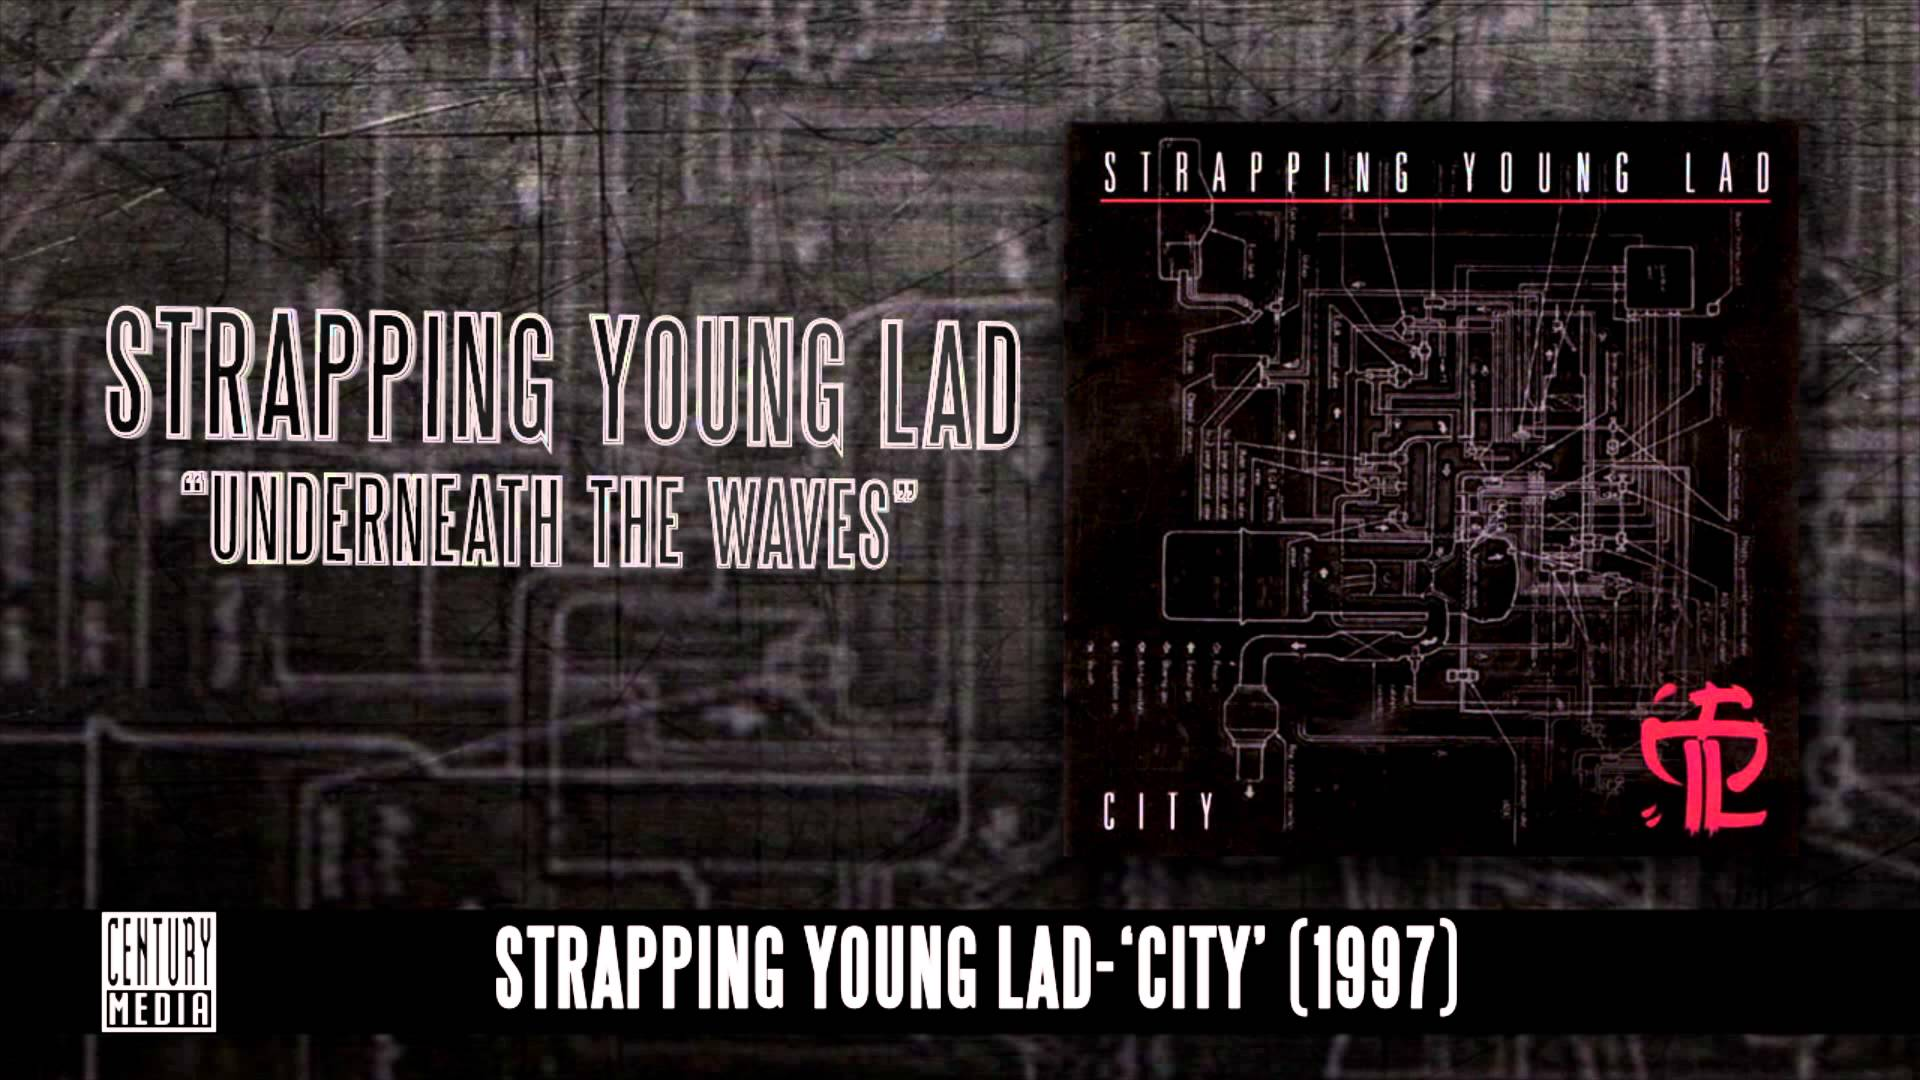 STRAPPING YOUNG LAD - Underneath The Waves (Album Track)